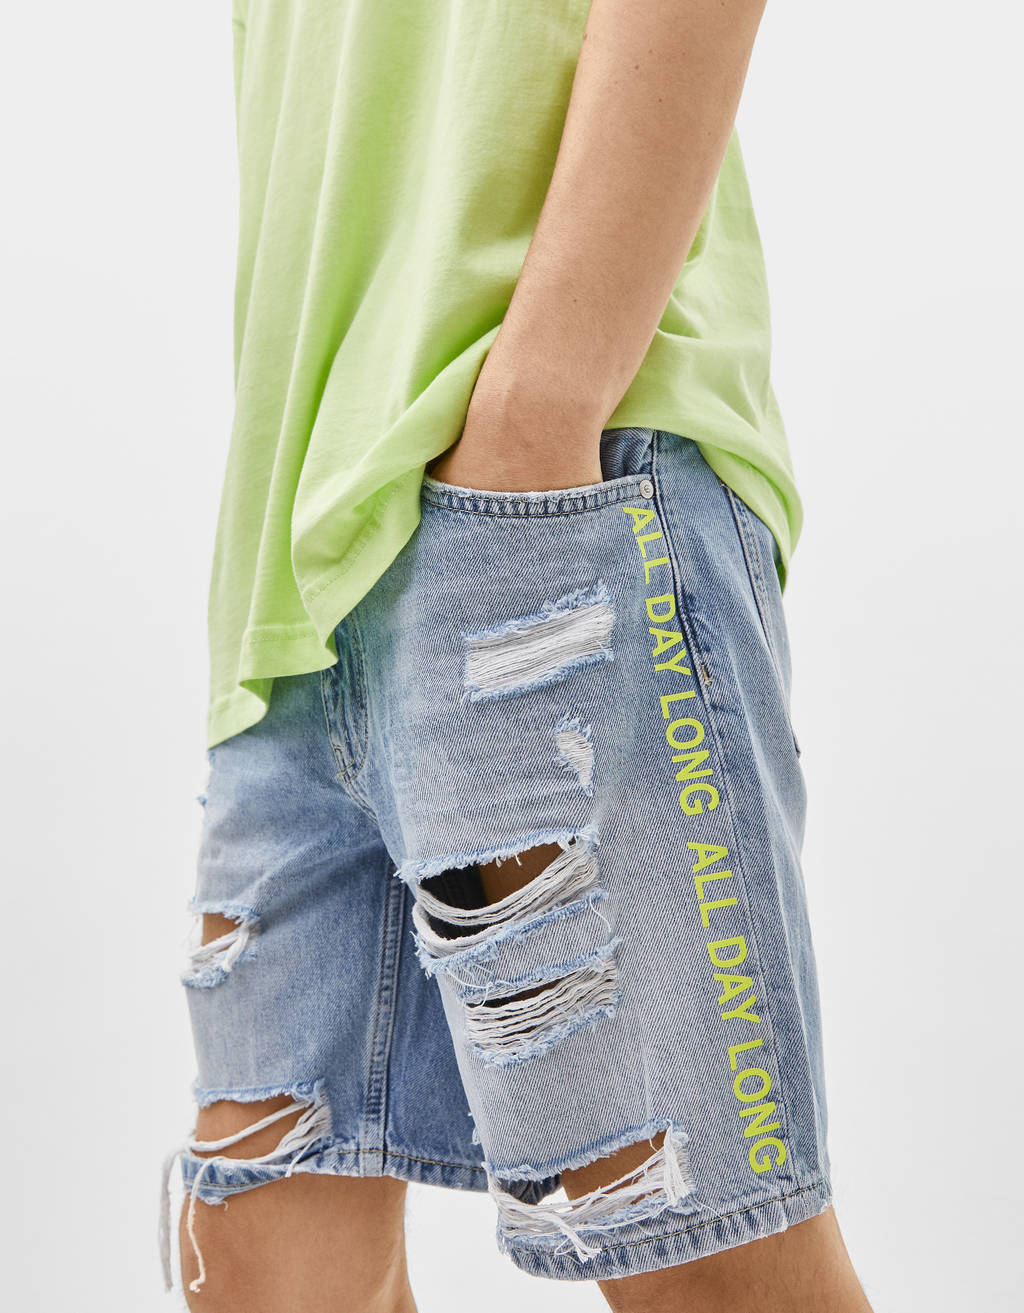 Bermuda shorts with reflective slogan